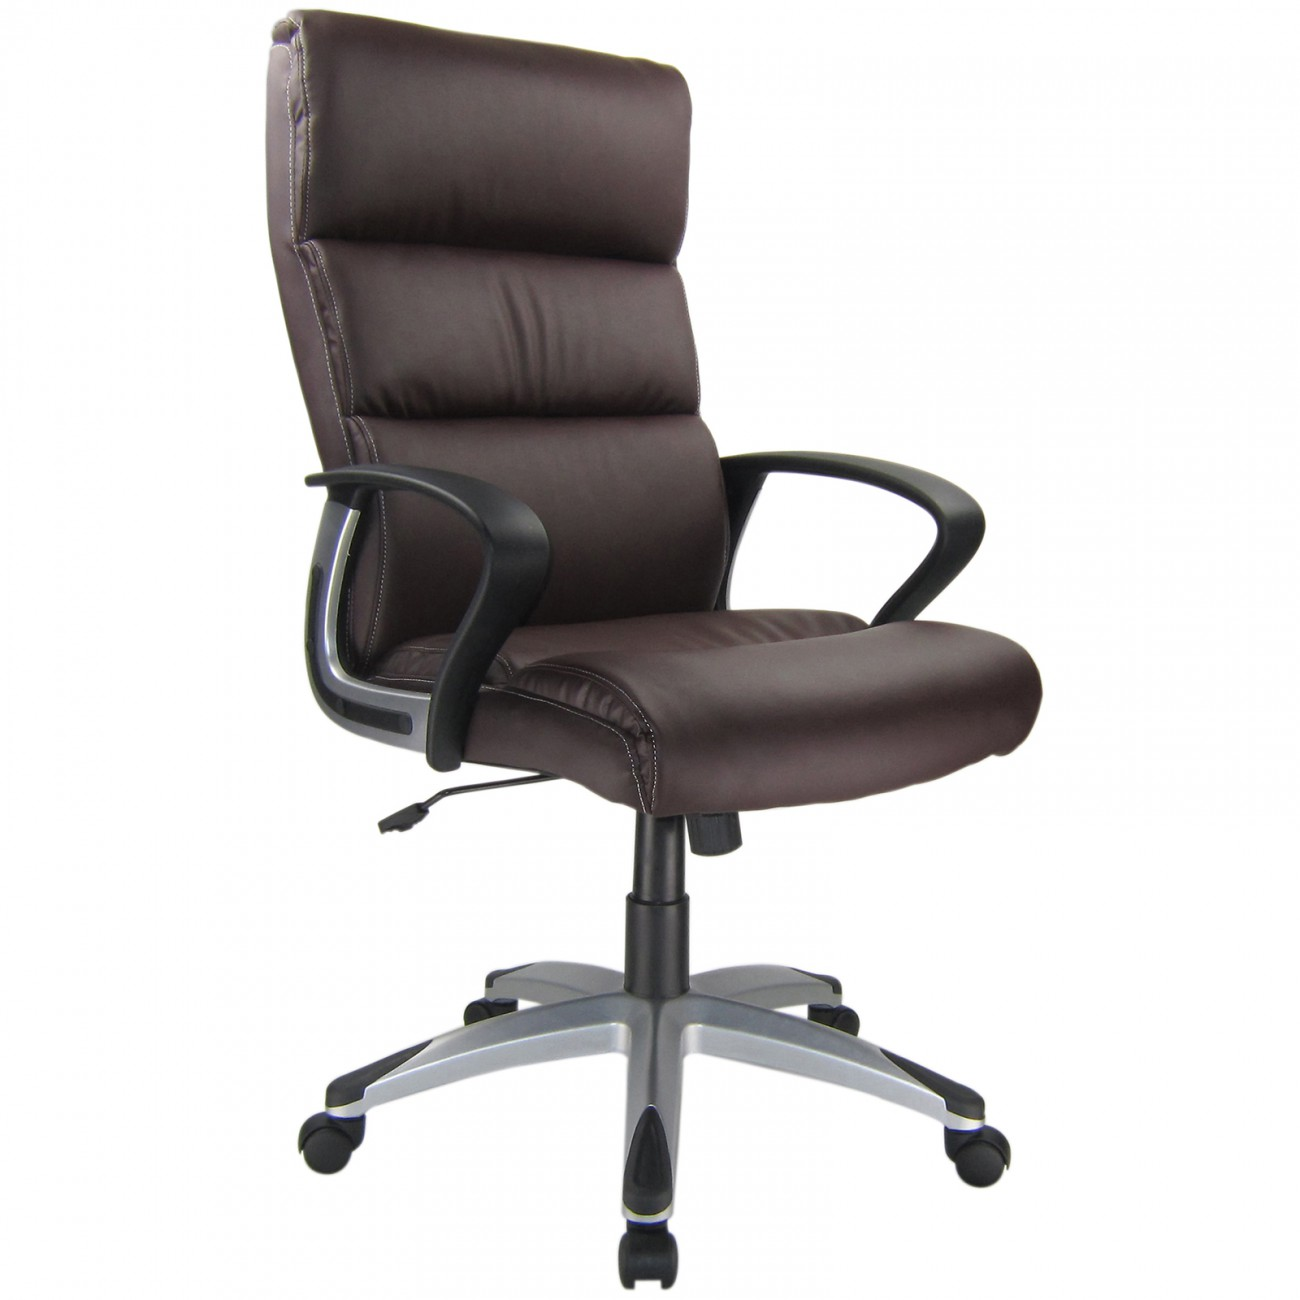 office chair executive computer desk adjustable armrest faux leather